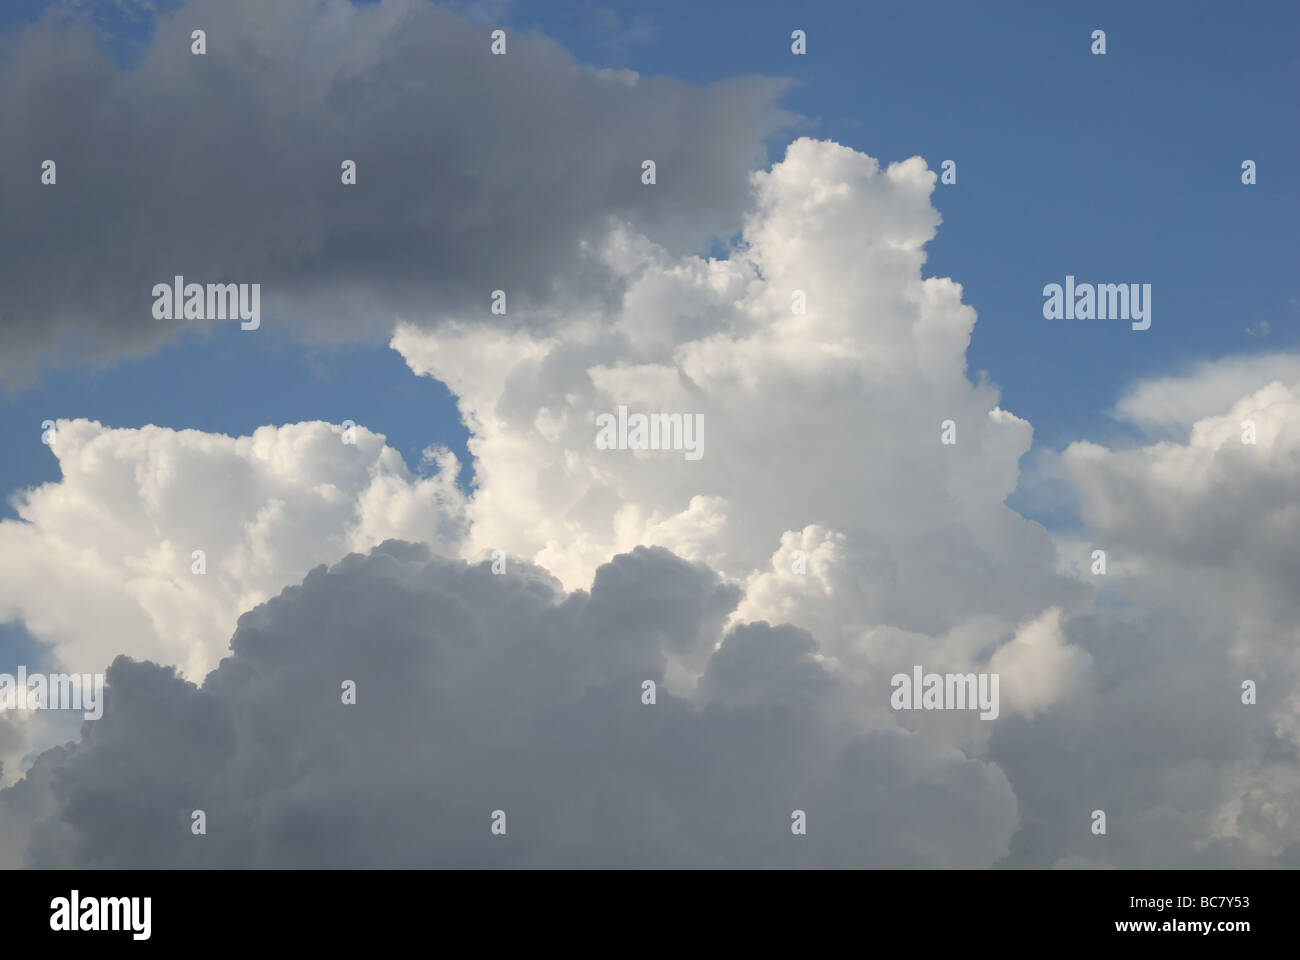 Storm clouds forming - Stock Image